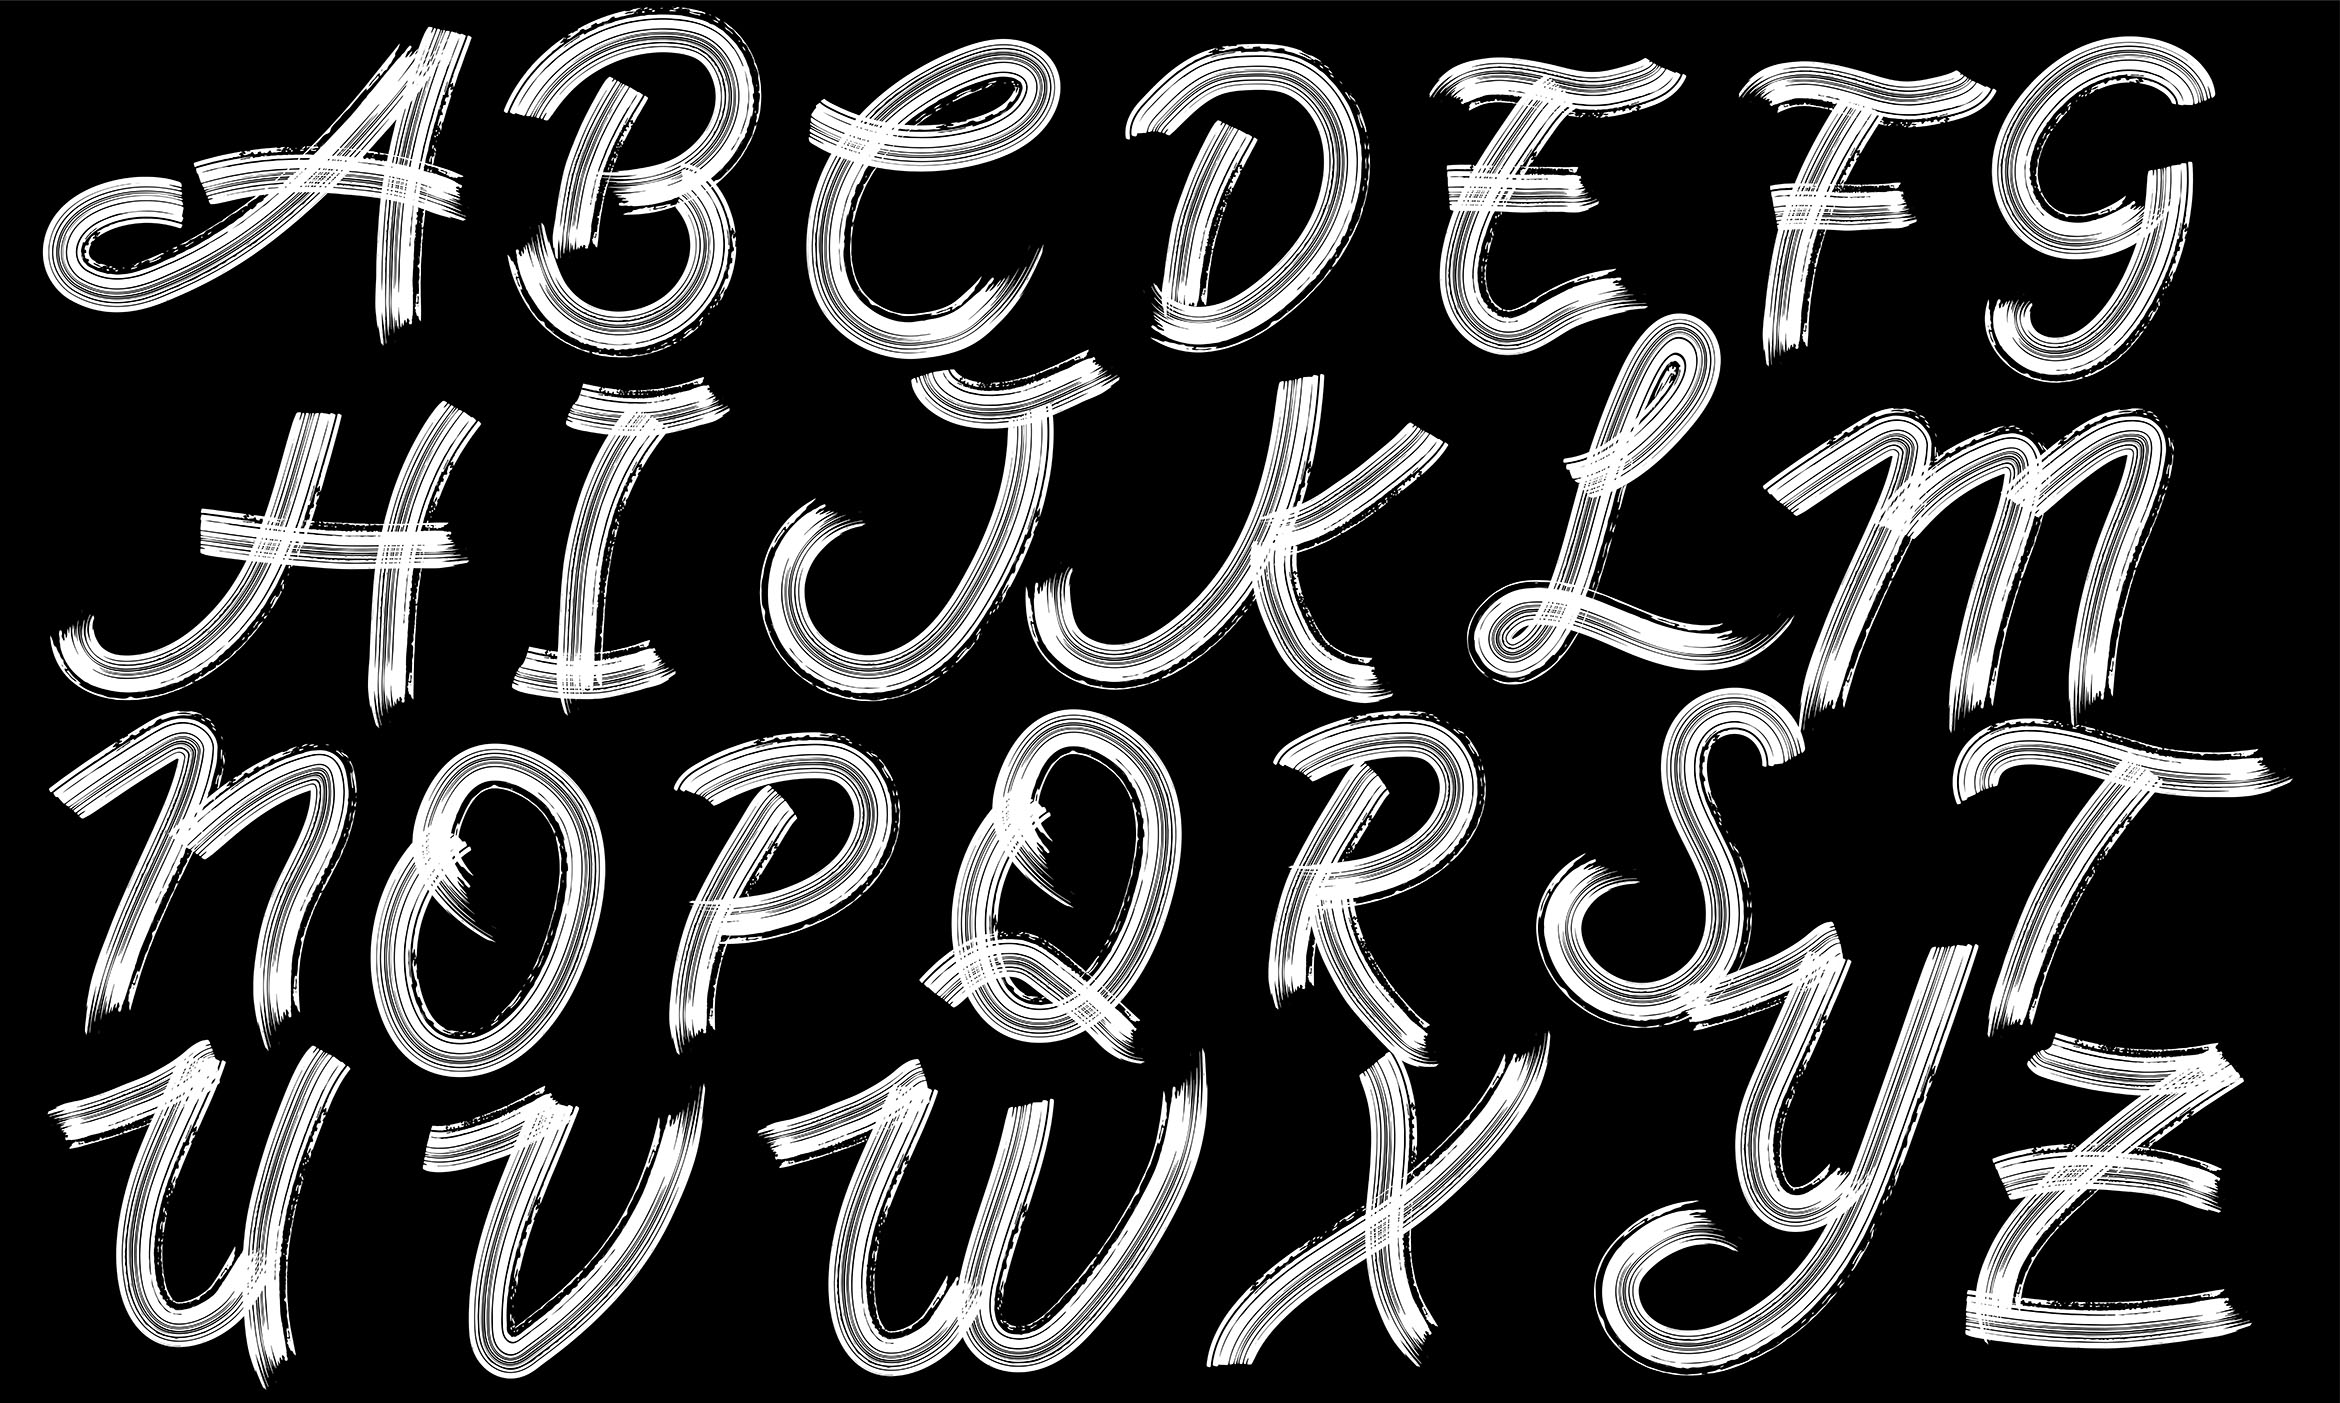 Download Free Brush Alphabet Vector Graphic By Aminmario Creative Fabrica for Cricut Explore, Silhouette and other cutting machines.